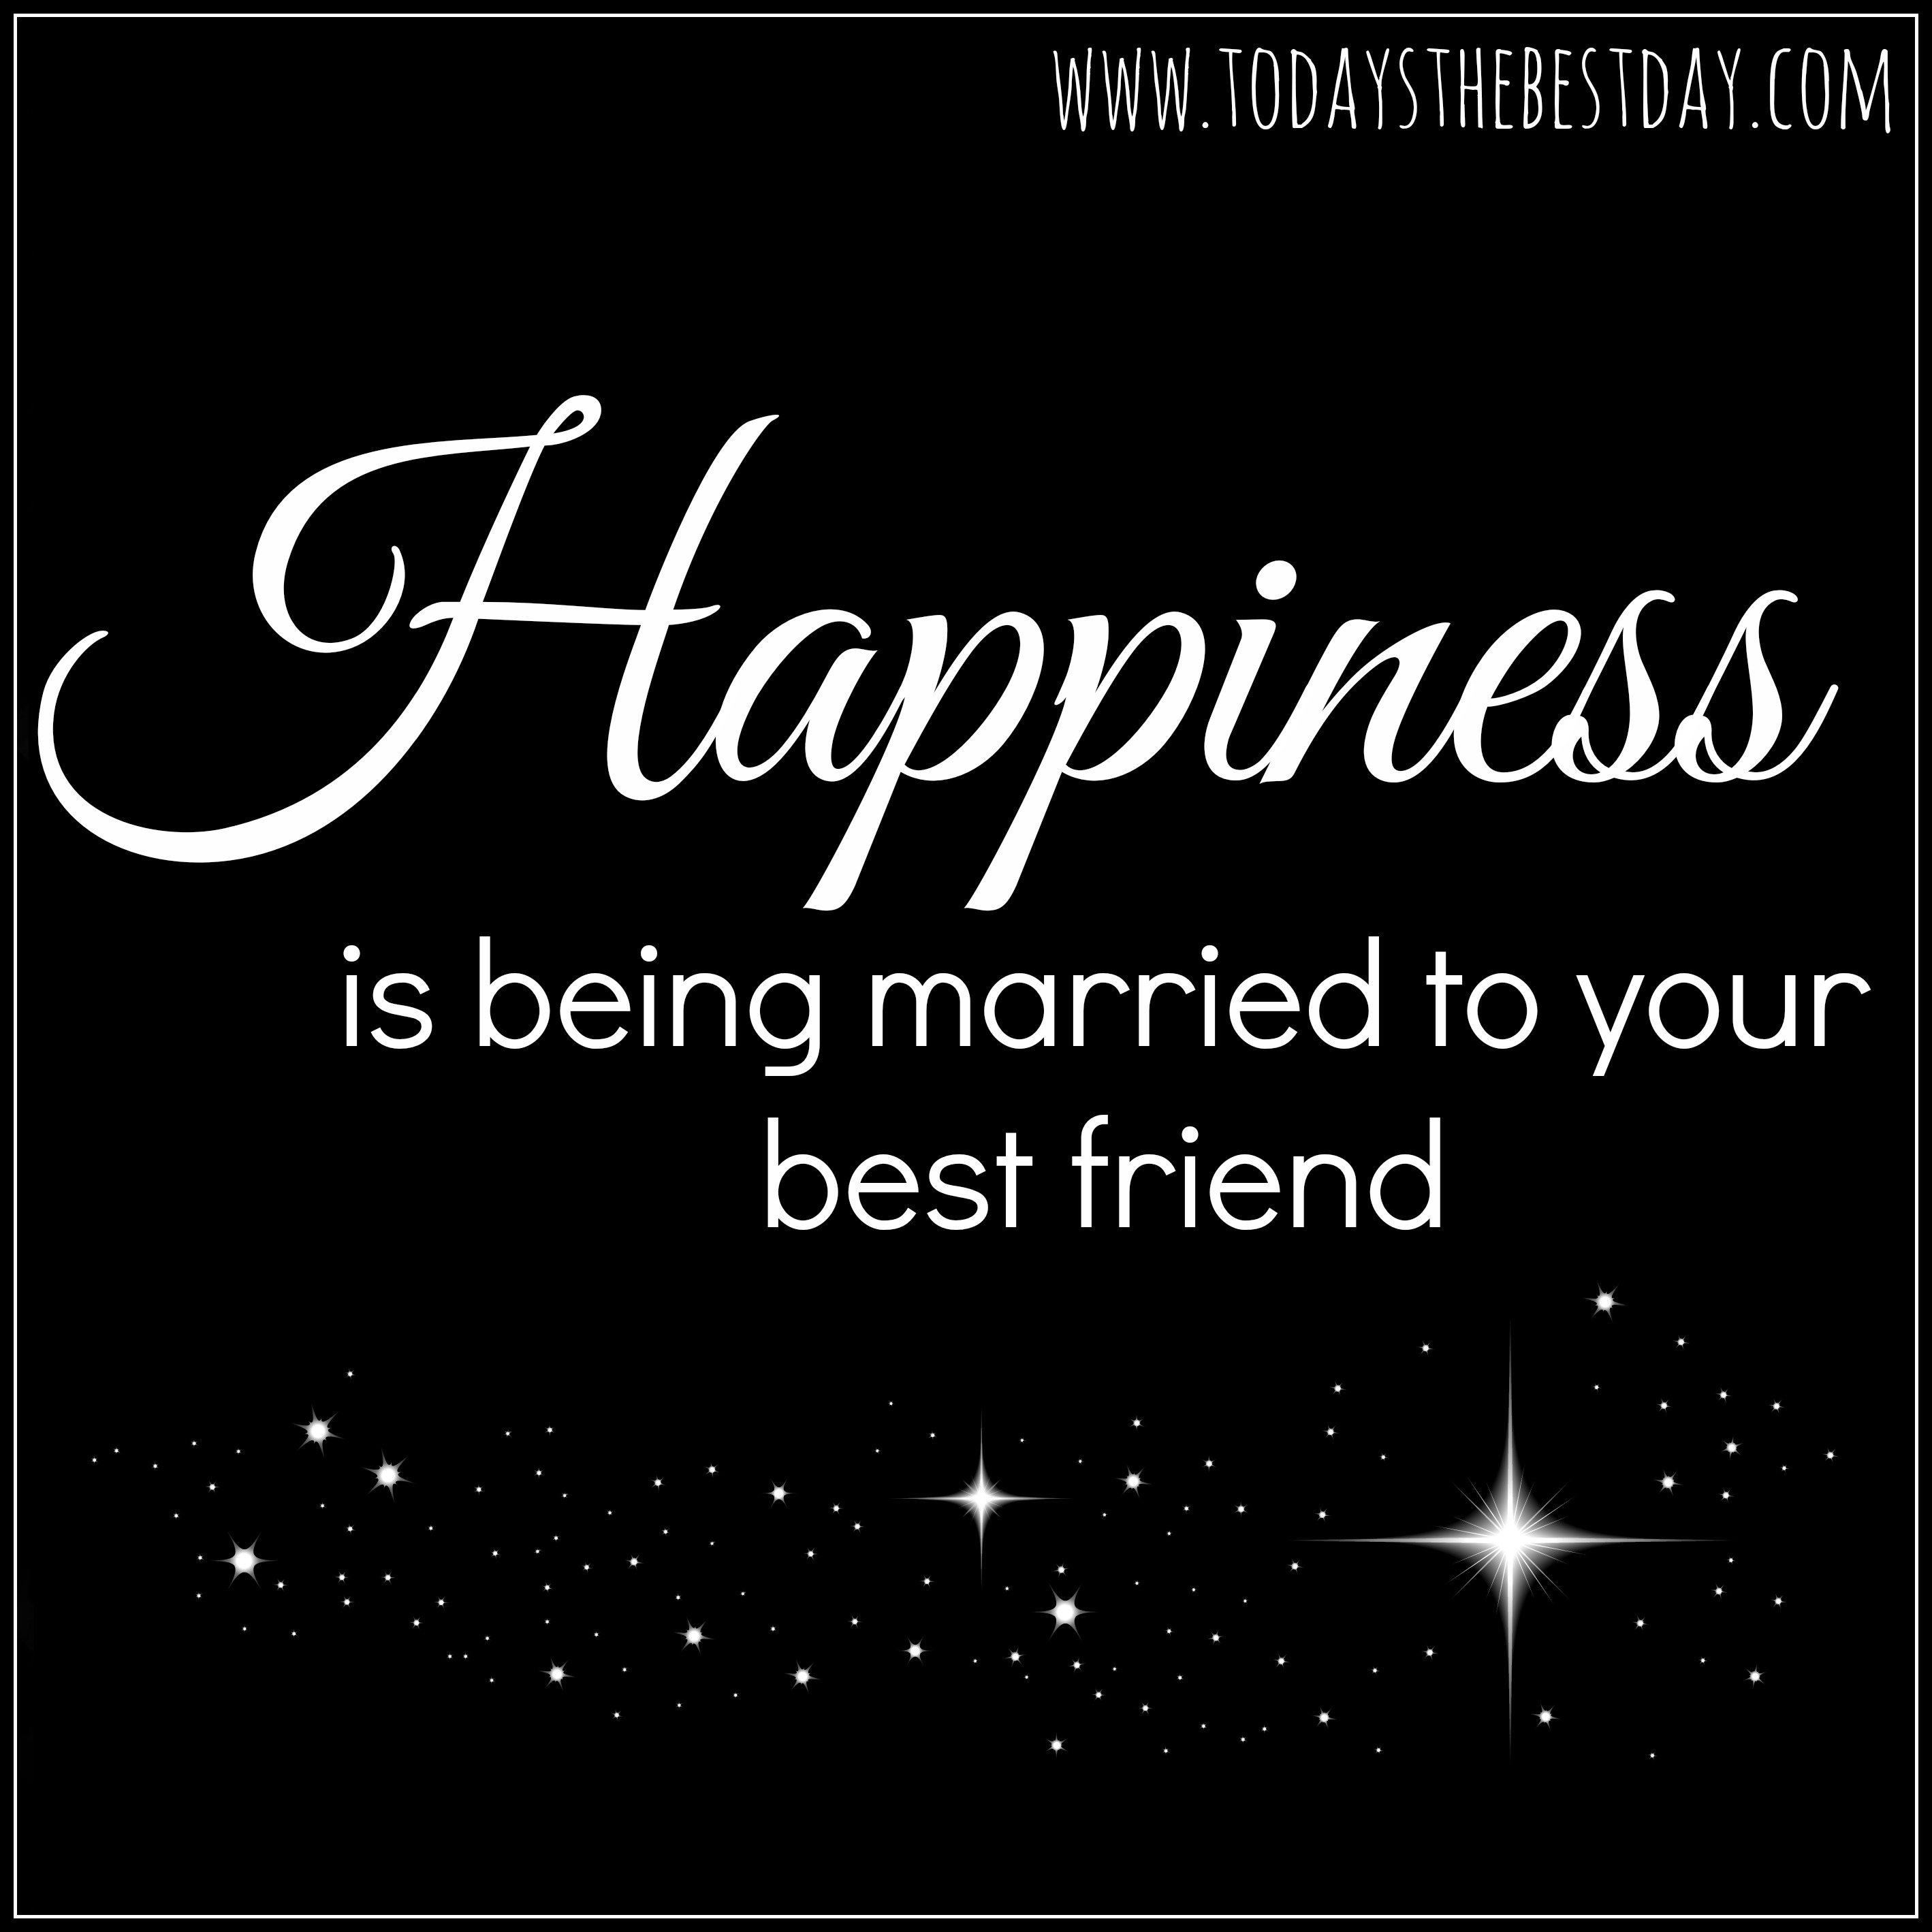 How To Make Your Best Friend Happy Quotes: A Few Things Your Husband Is Waiting To Hear